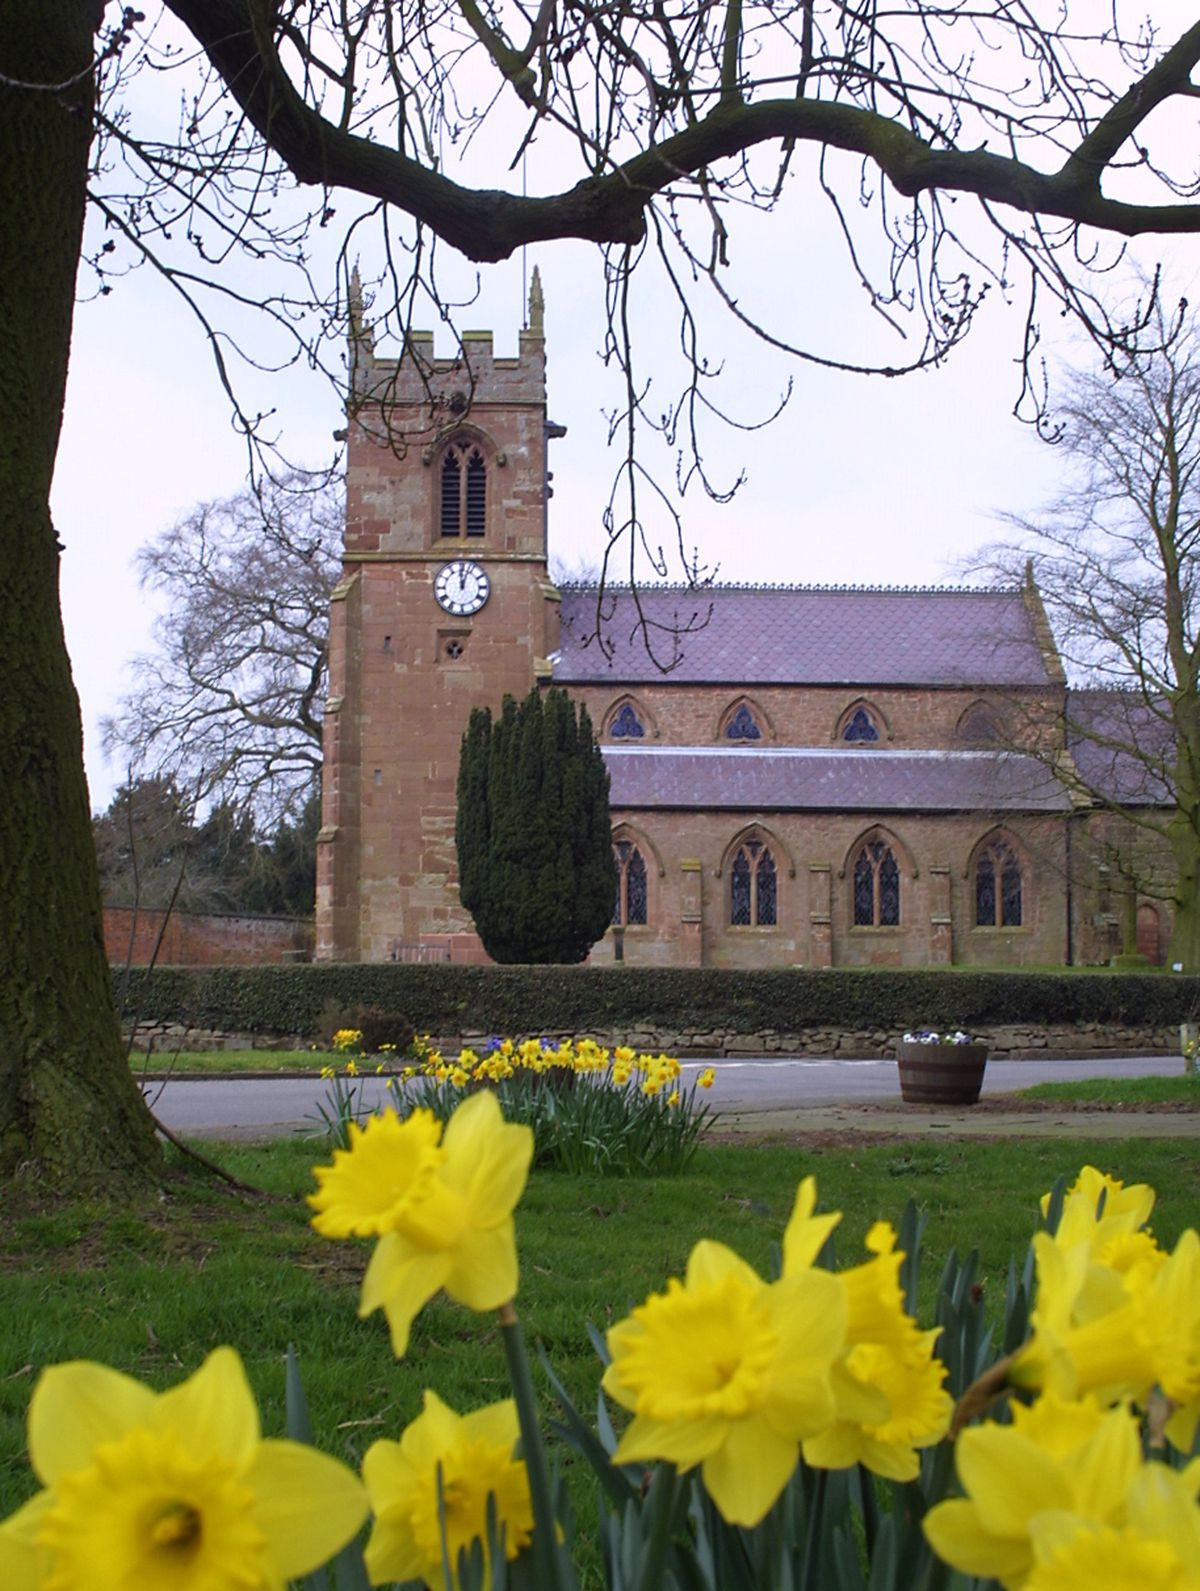 St Chad's at Norton-in-Hales